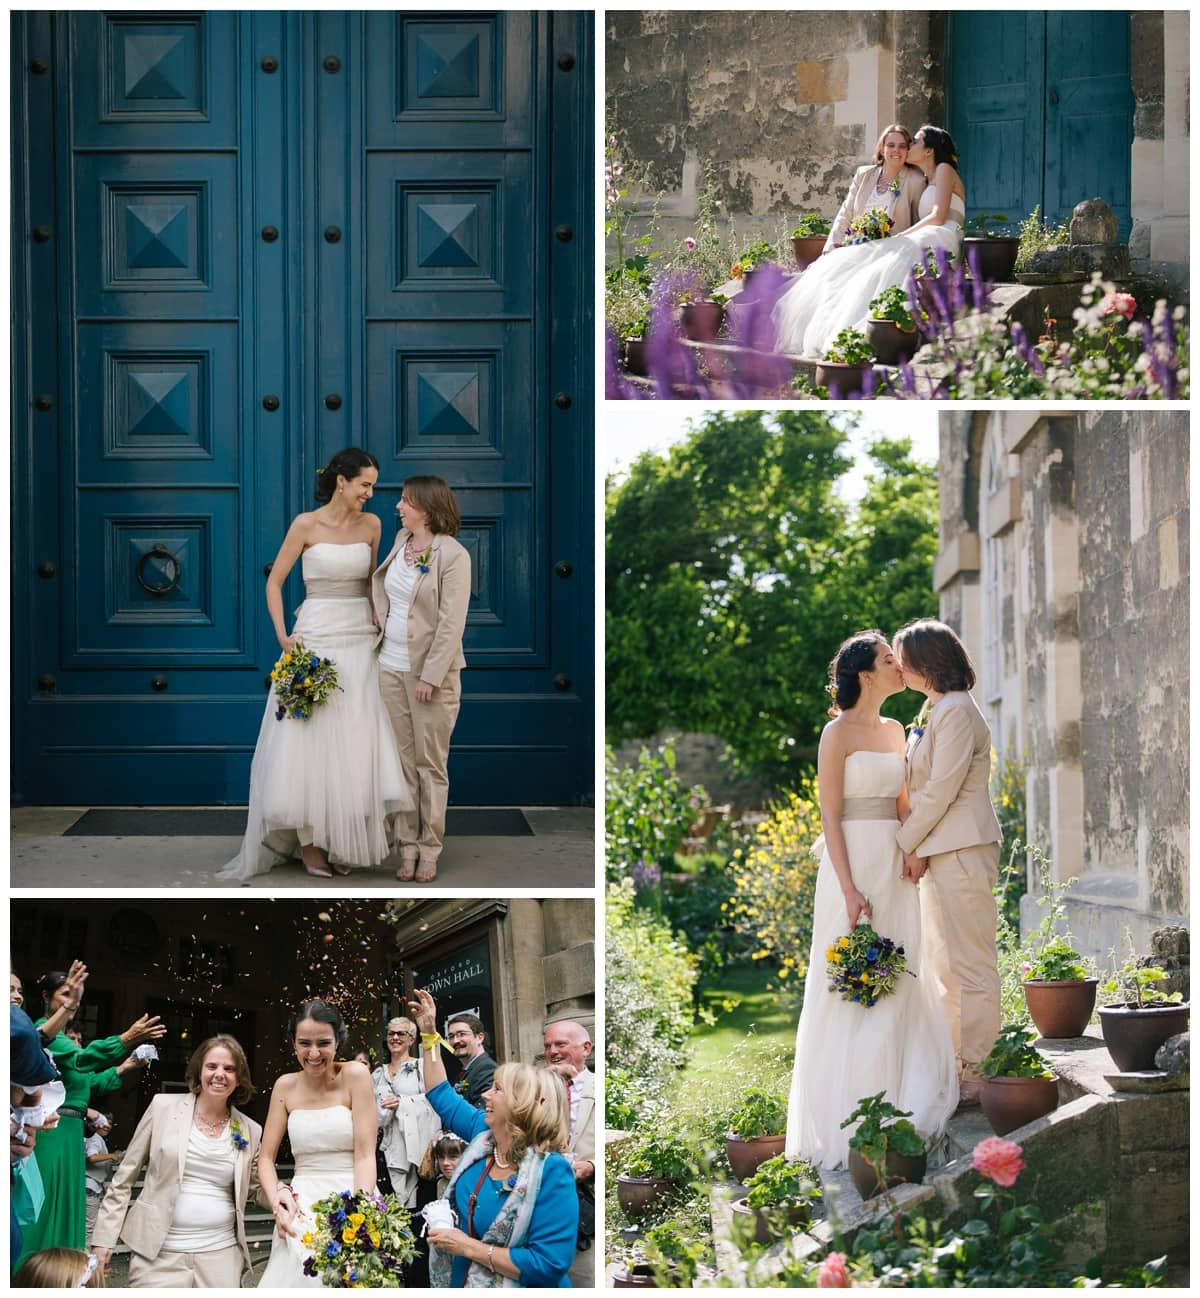 Collage of images of lesbian wedding in Oxford at Ashmolean Museum